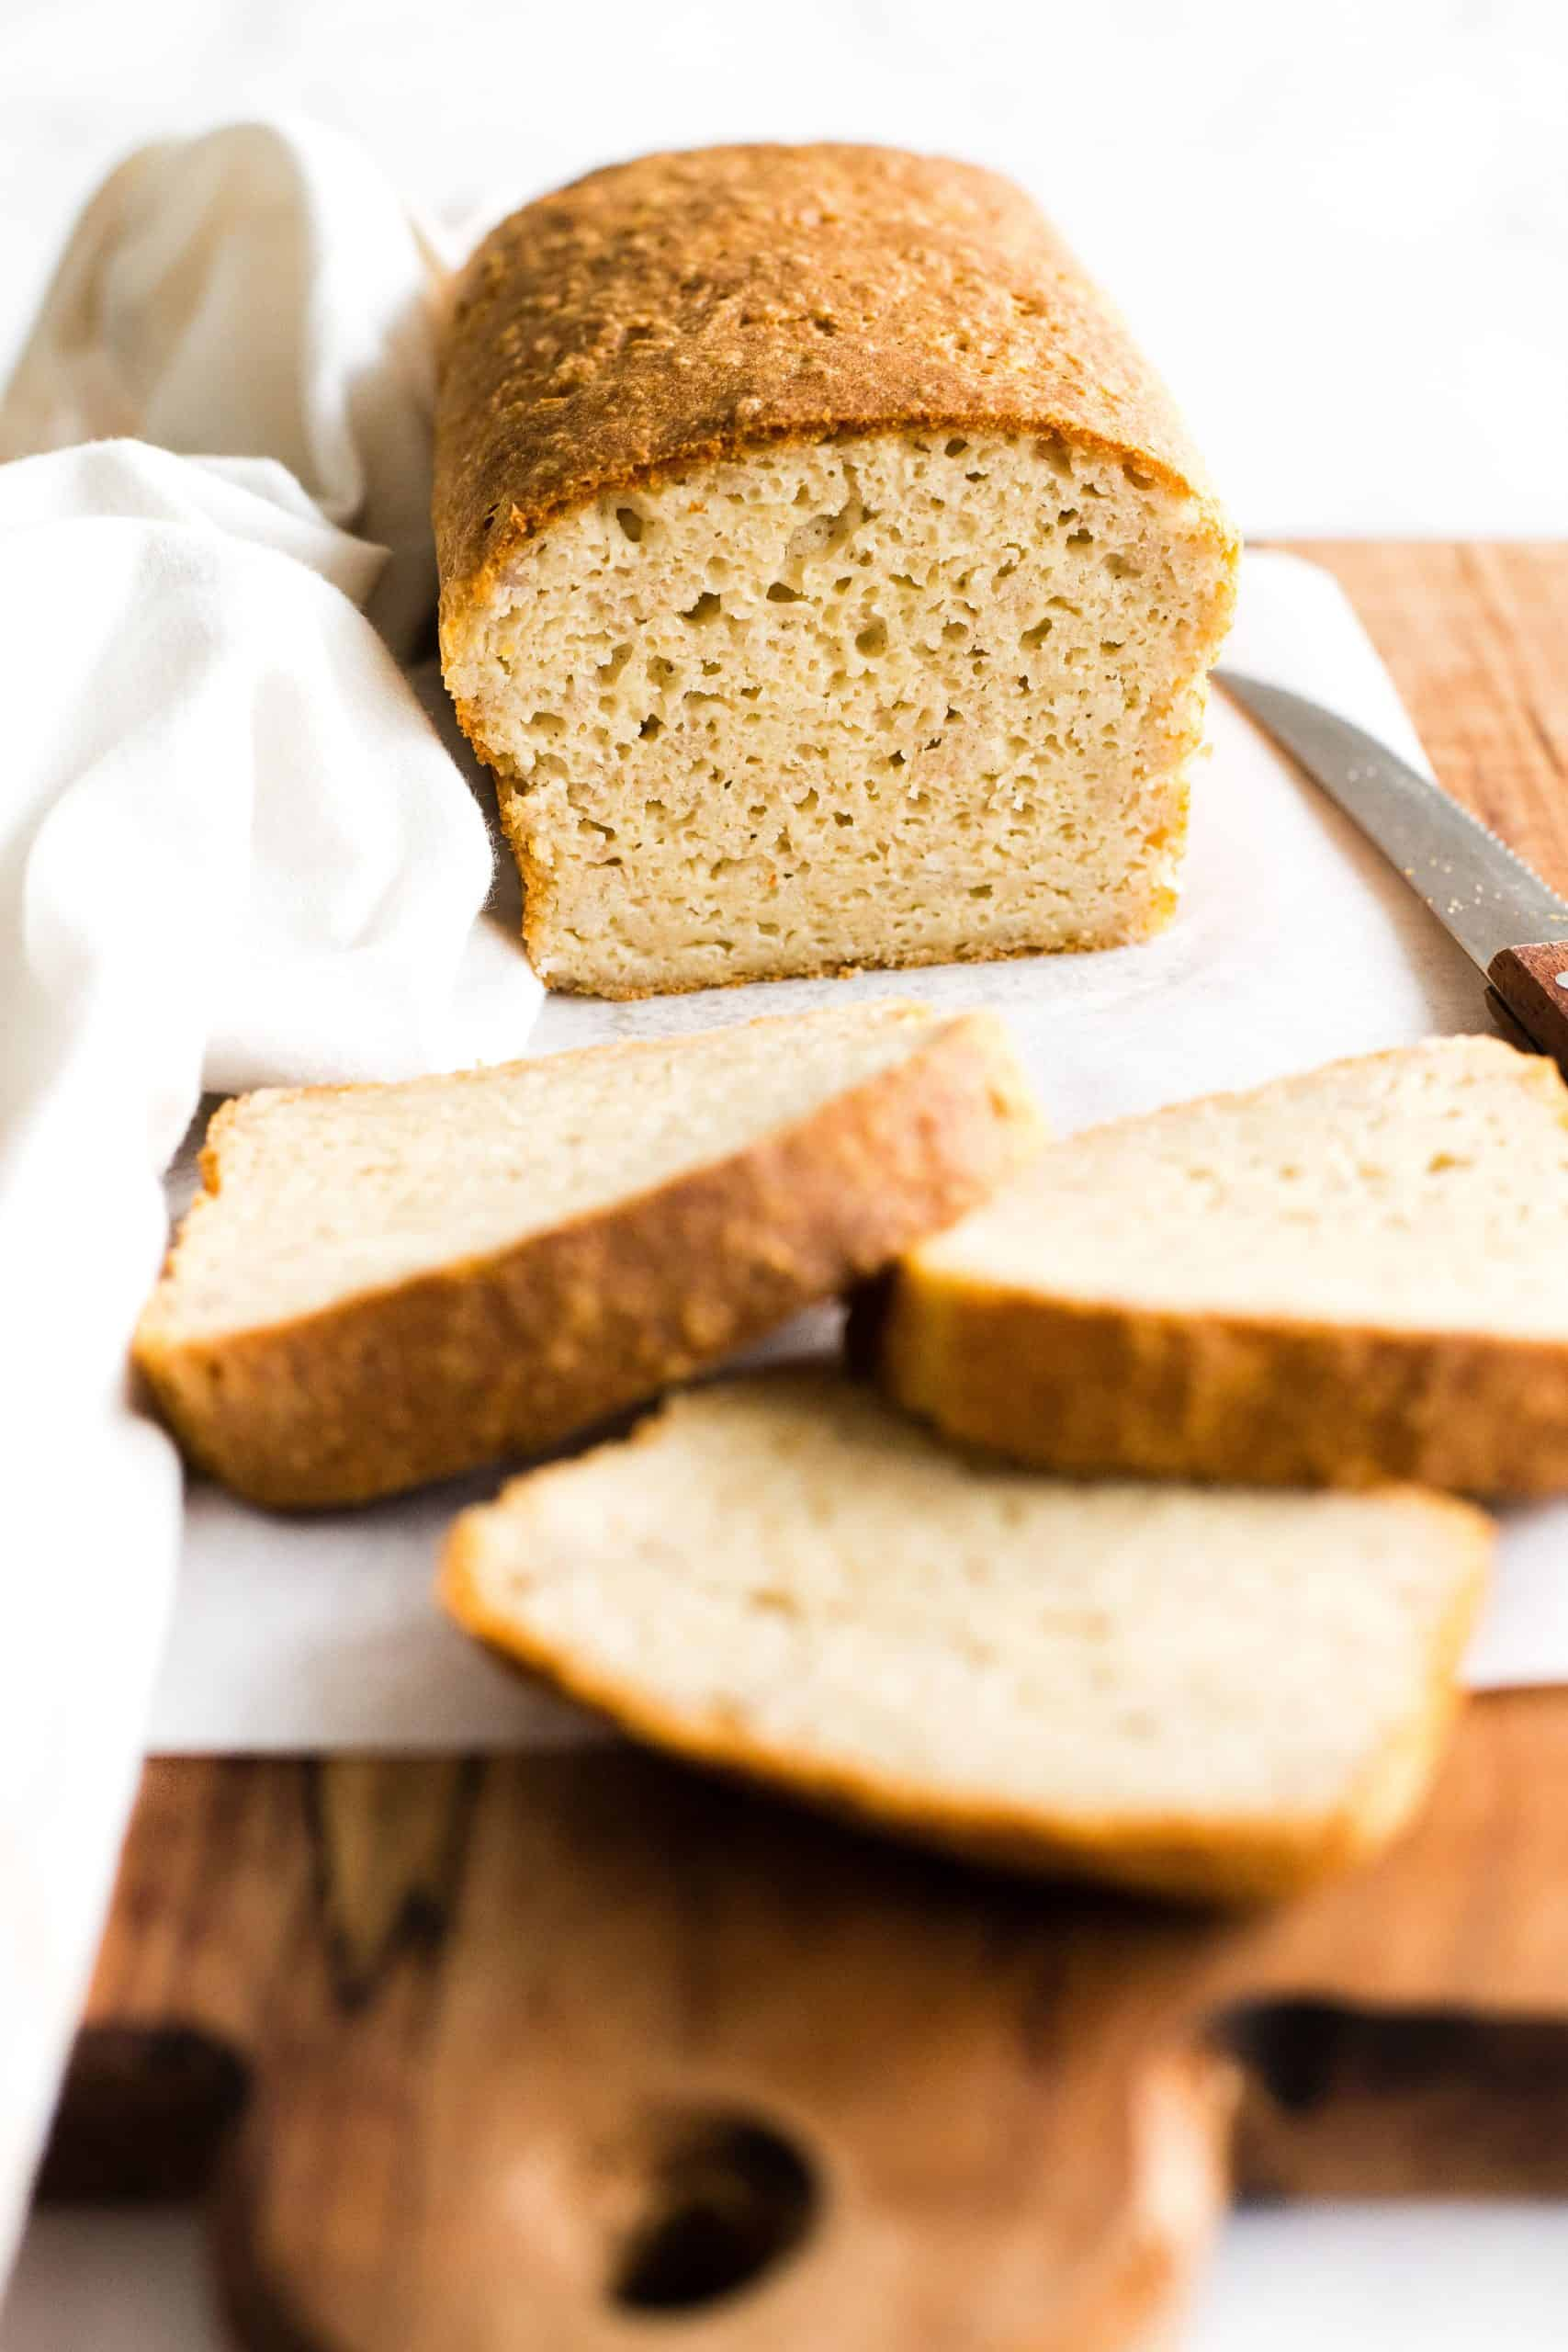 A half-sliced loaf of sorghum bread on a parchment-lined wooden board.